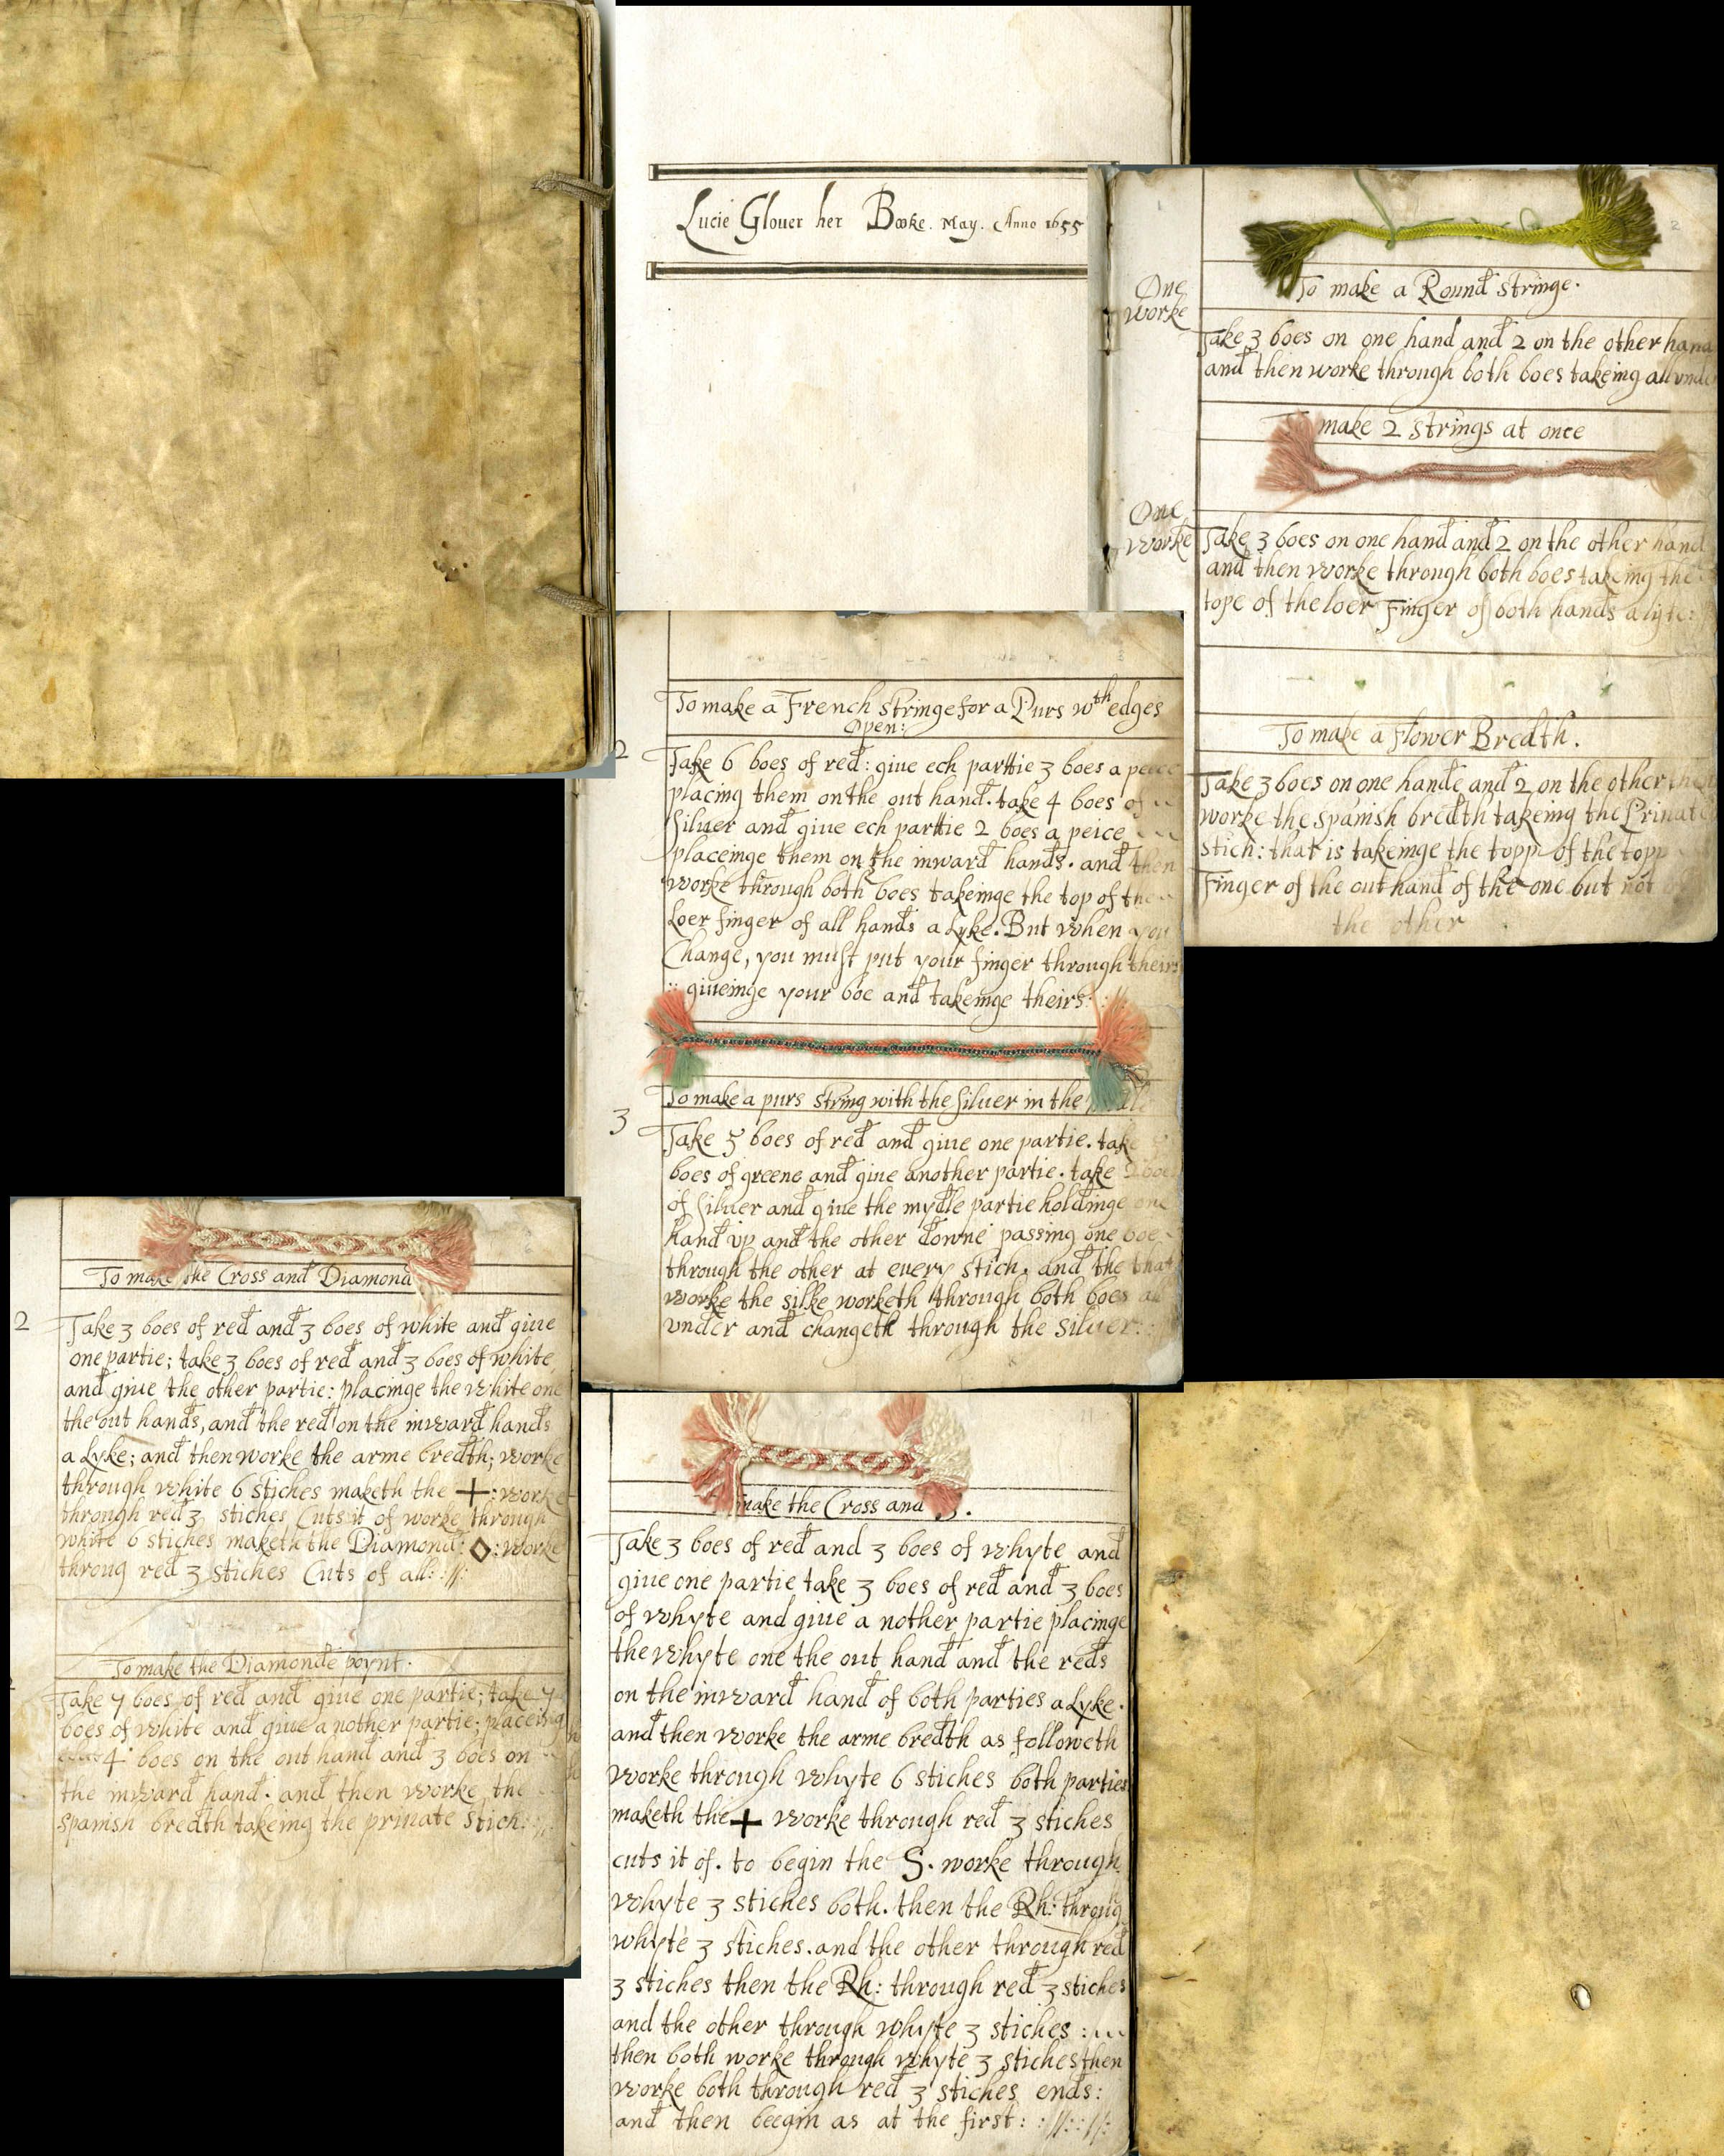 Lucie Glover's manuscript of patterns for purse strings and braid. Manuscript book of patterns for purse strings and braid. (Blank pages not included). Signed and dated 1655 Dimensions: Overall: 7 5/16 x 6 x 5/16 in. (18.5 x 15.3 x 0.8 cm) Credit Line: Harris Brisbane Dick Fund, 1944 Accession Number: 44.46